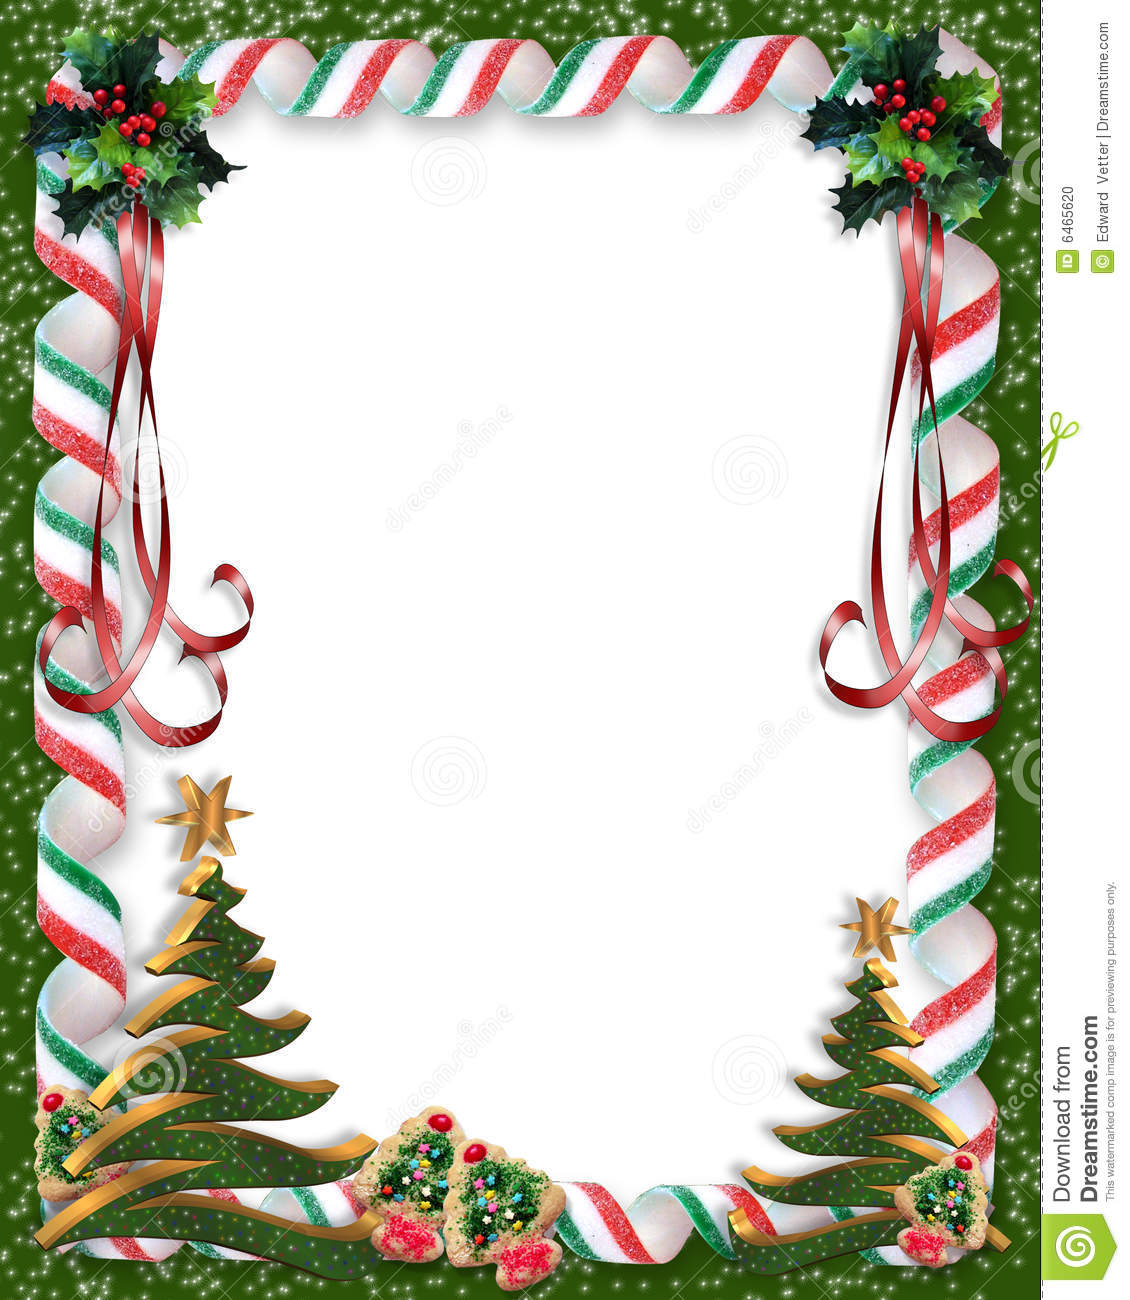 Christmas border frame candy illustration 0 megapixl jpg